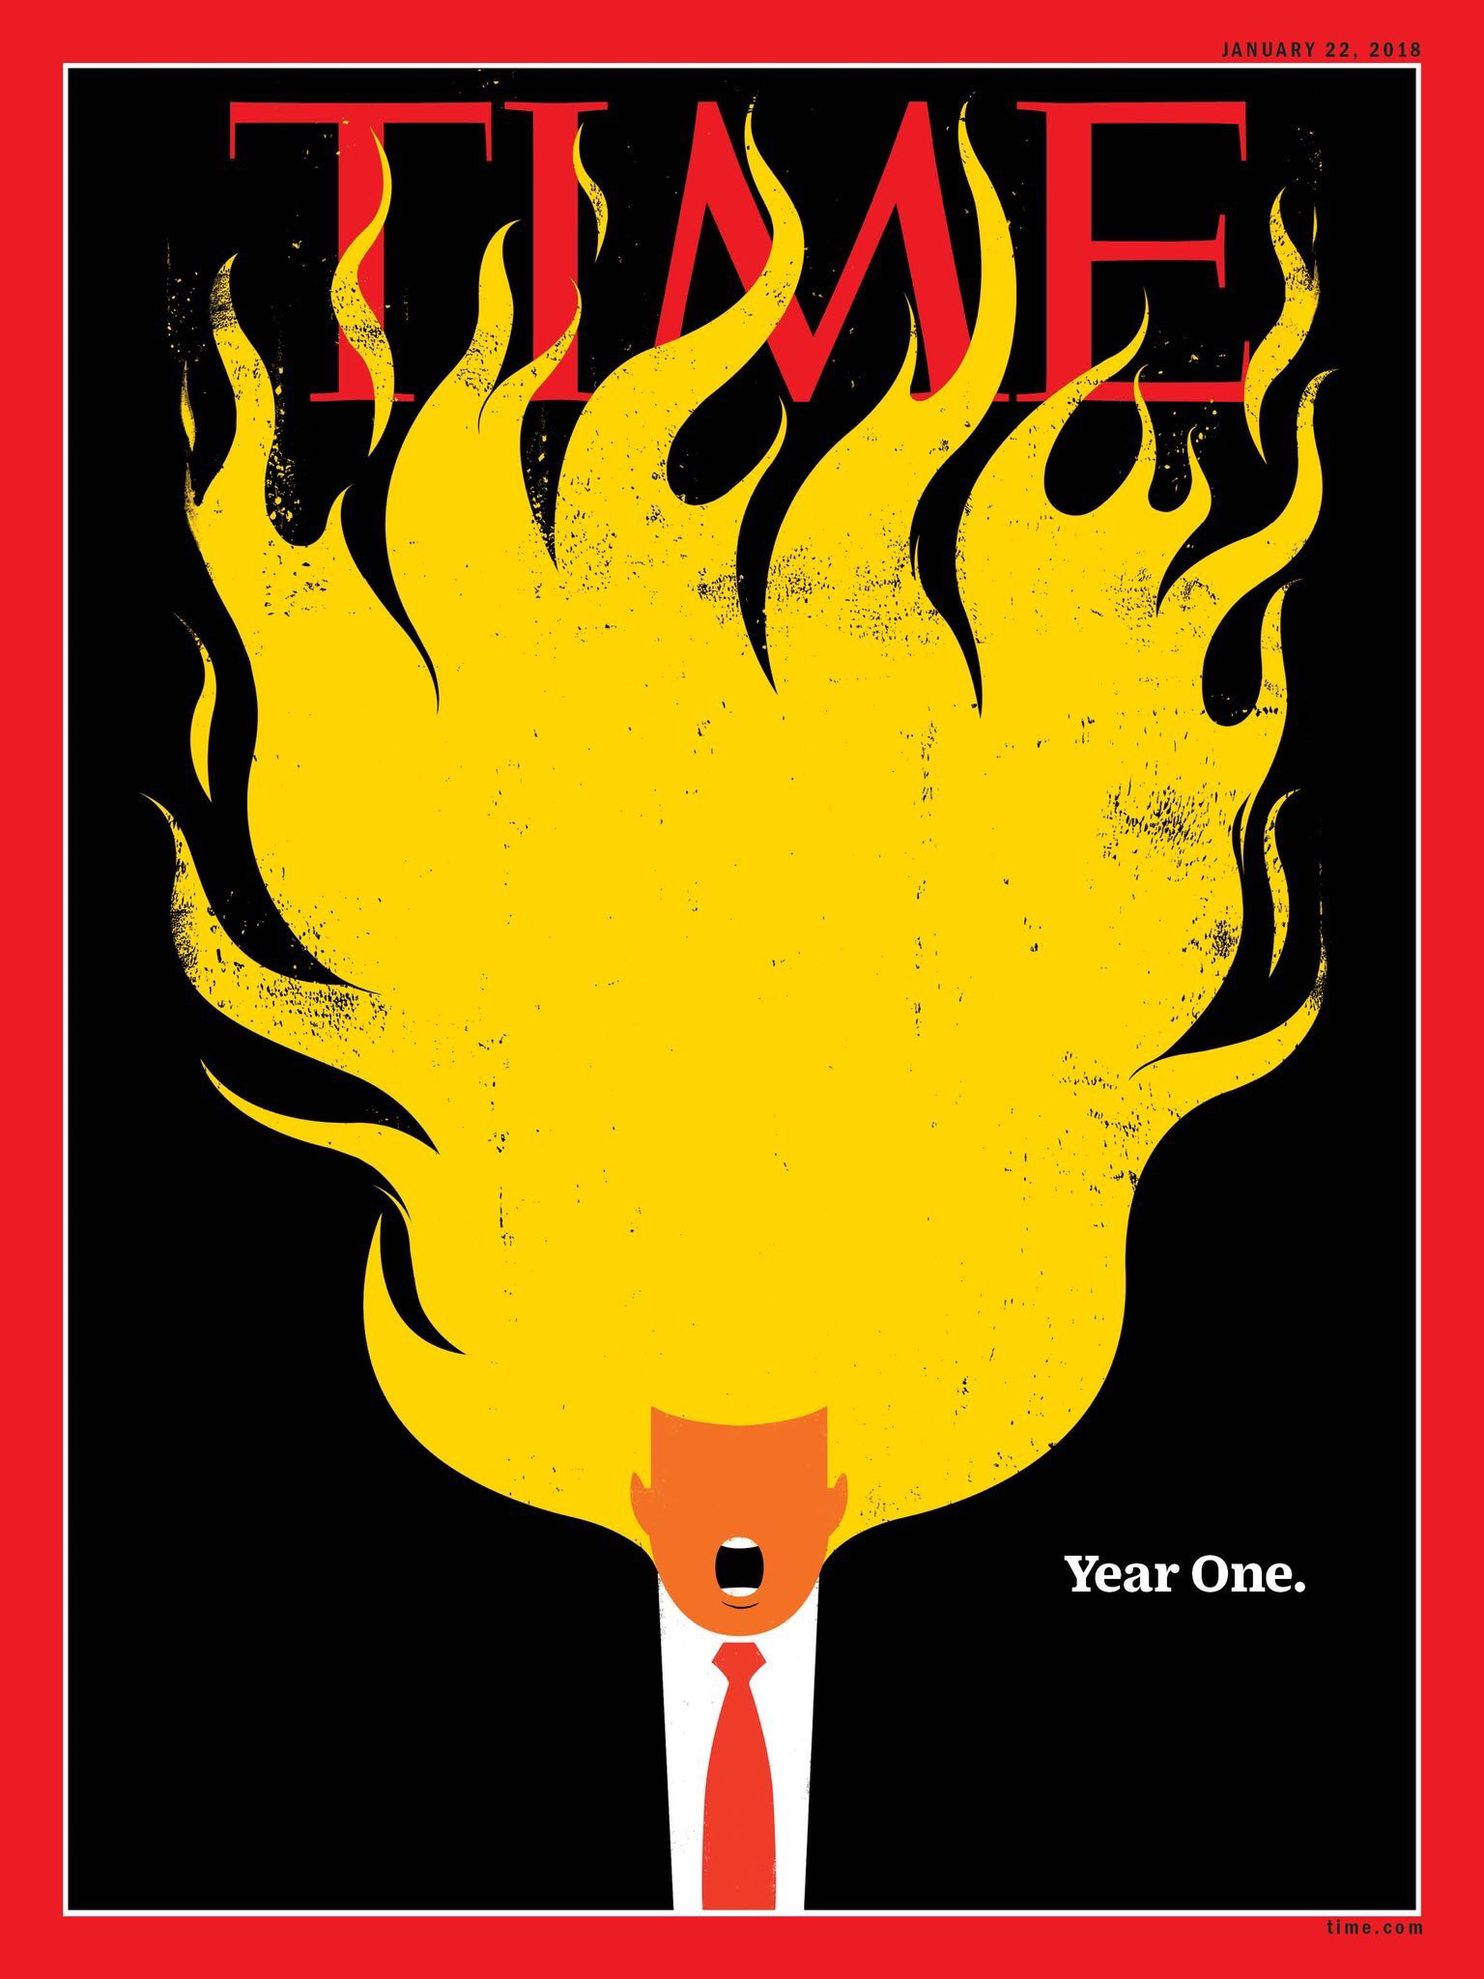 Year One Time magazines striking new cover literally